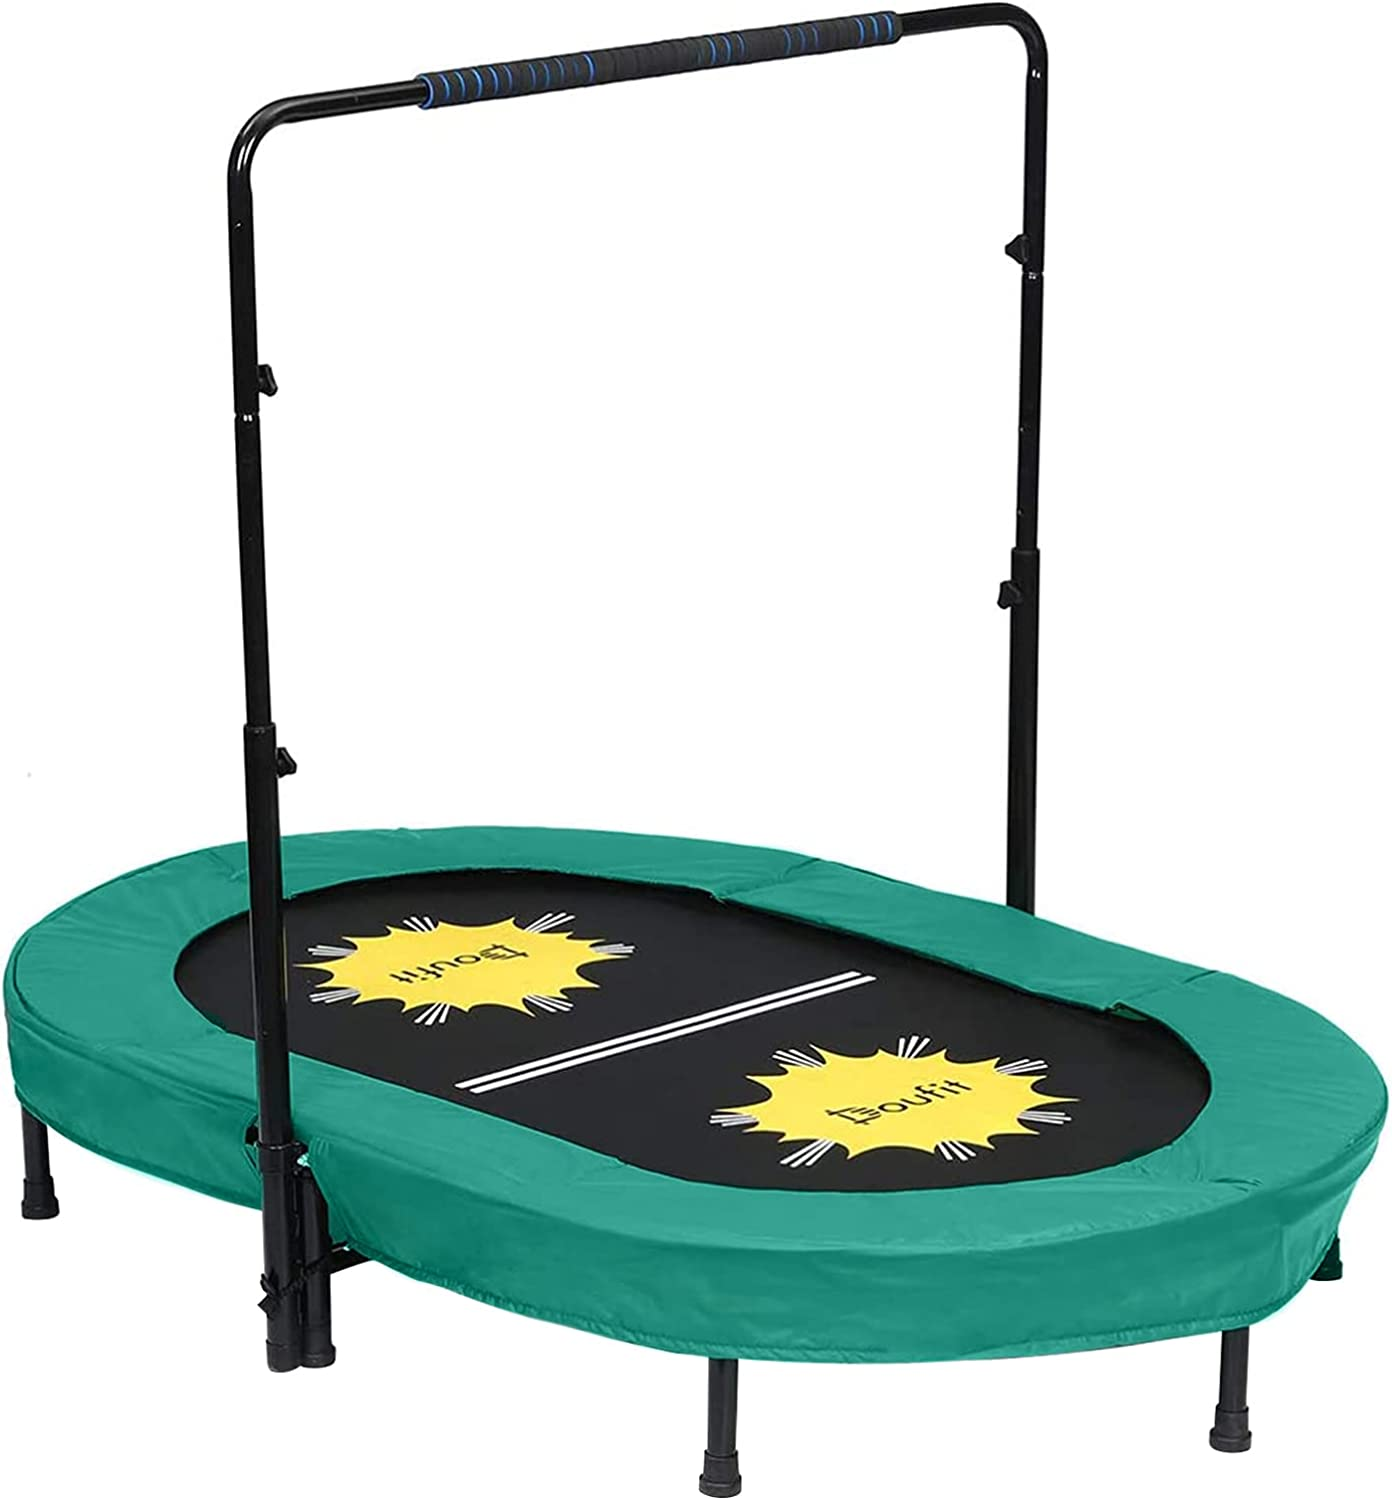 Trampoline for 2 Kids and Adults with Handle 交換無料 Bar Adjustable ついに入荷 Dou